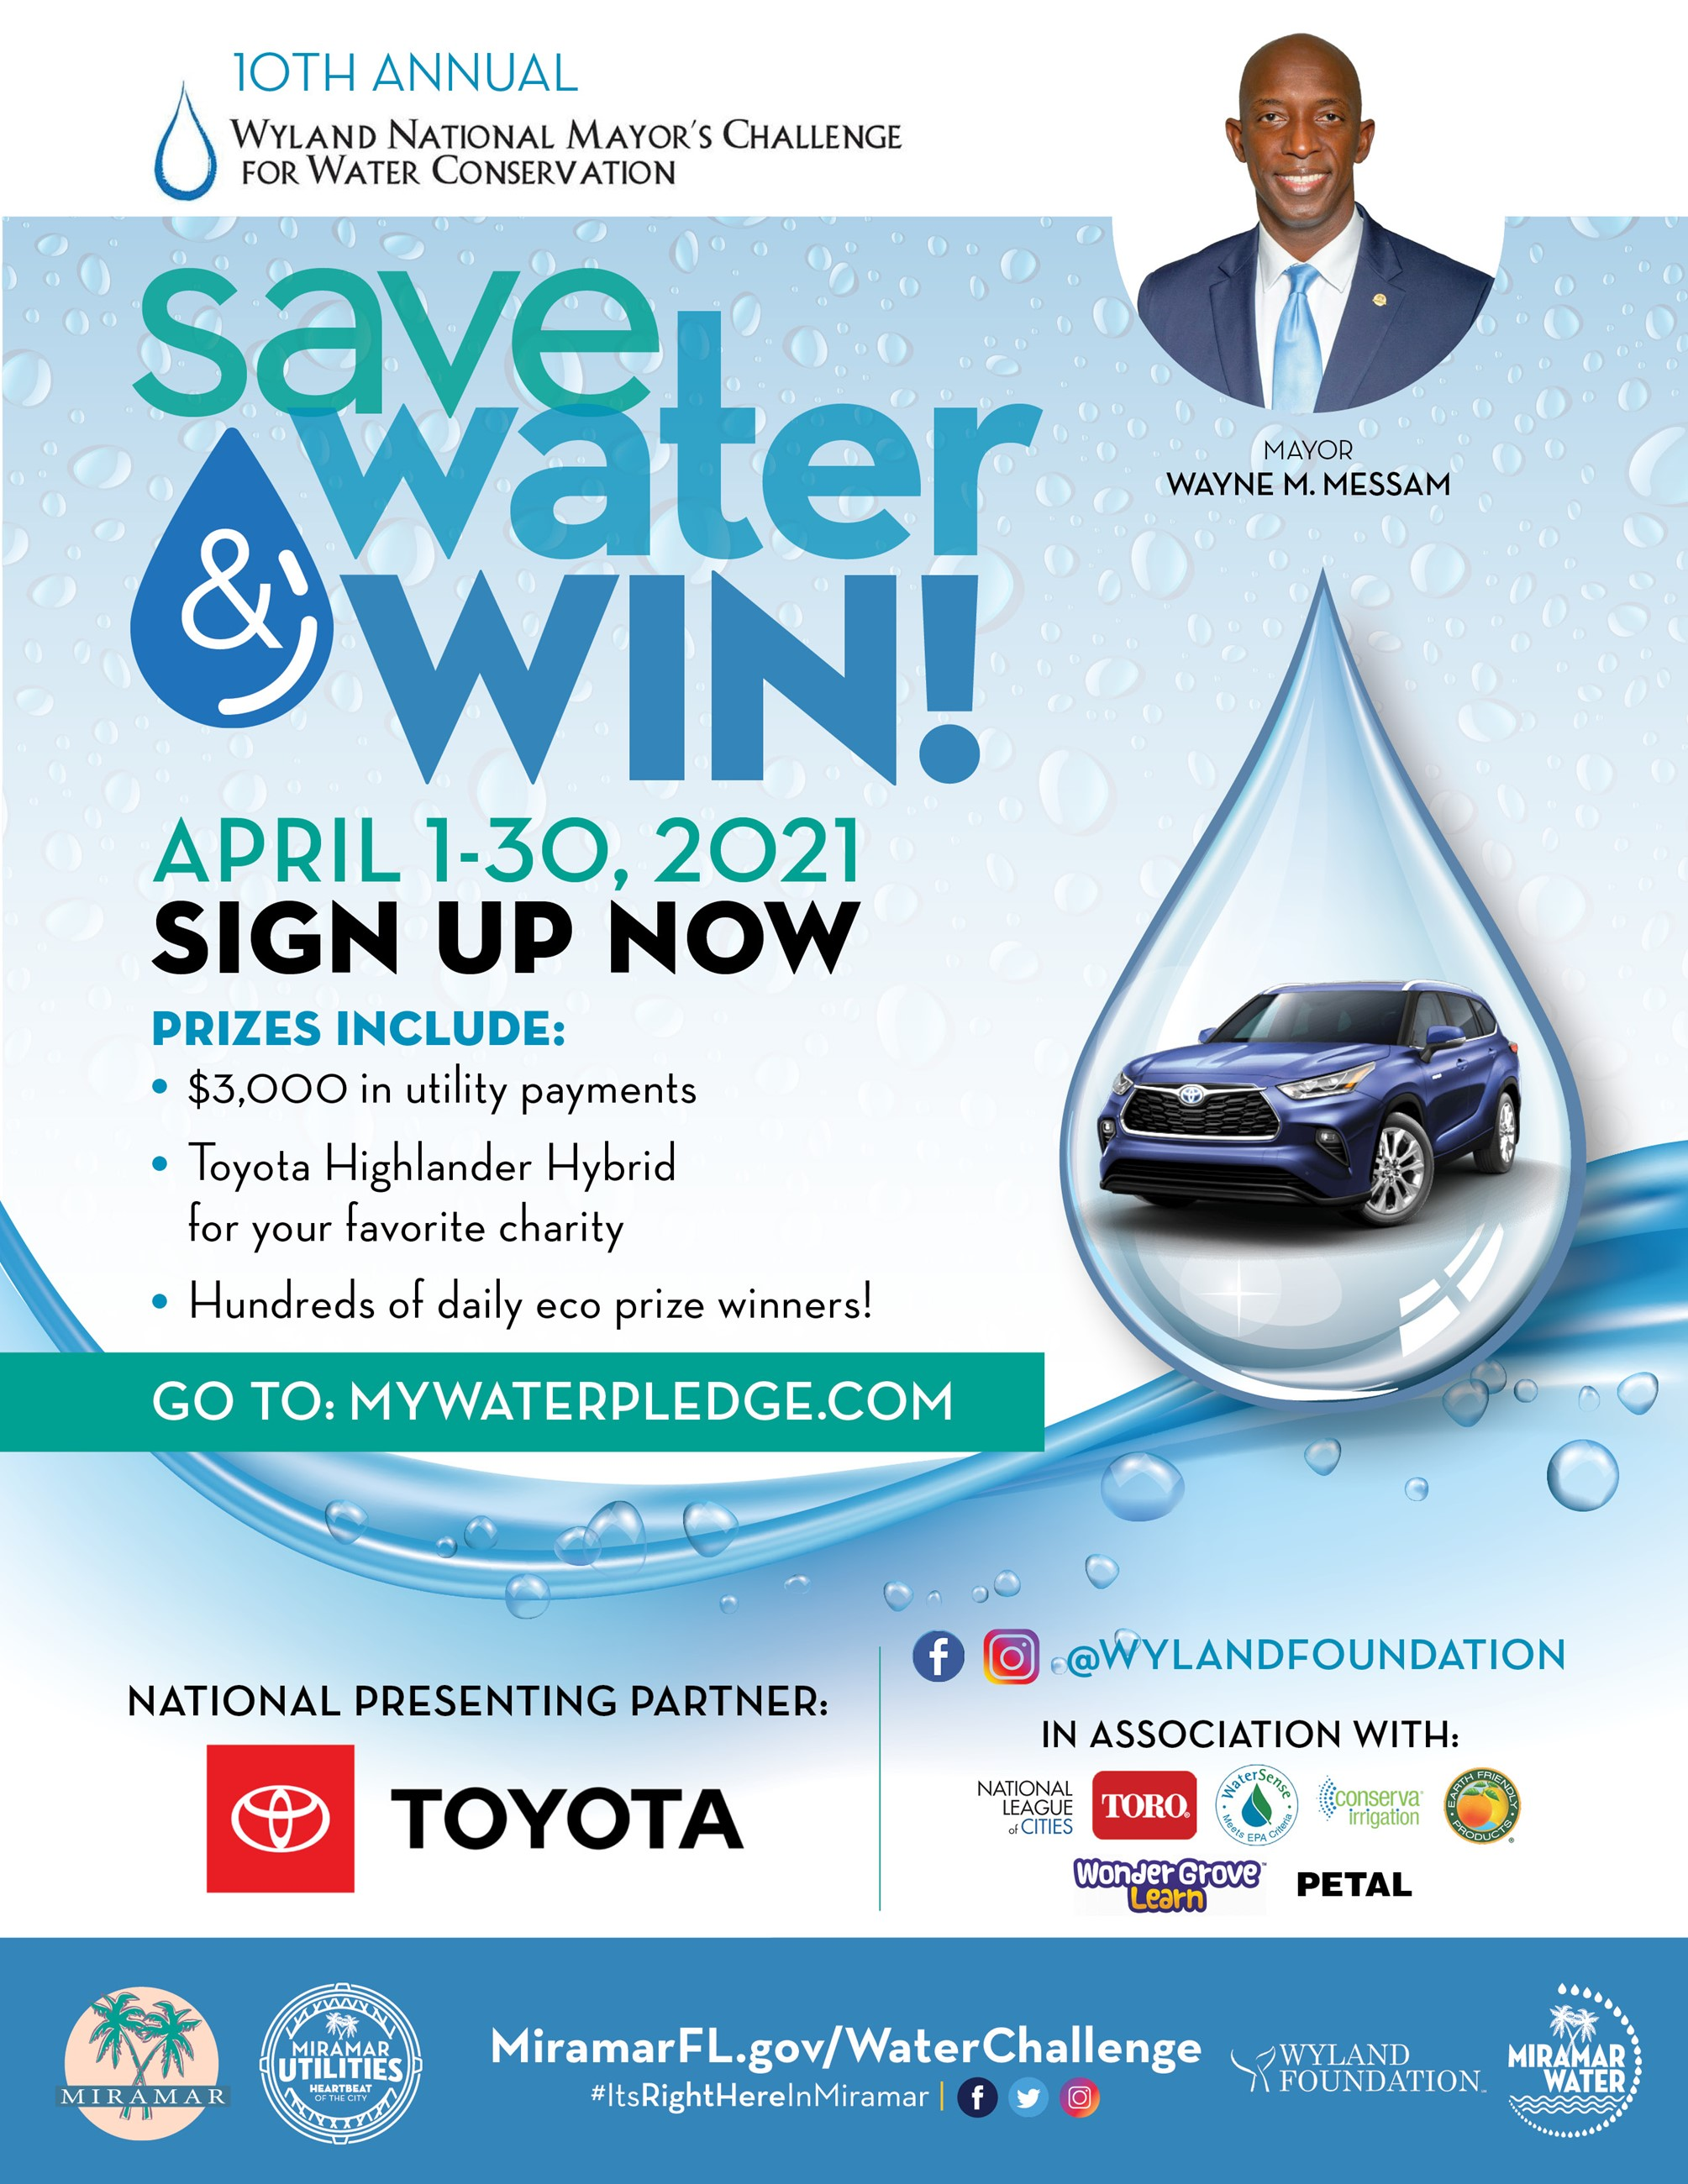 Mayor Messam Annual Water Conservation Challenge